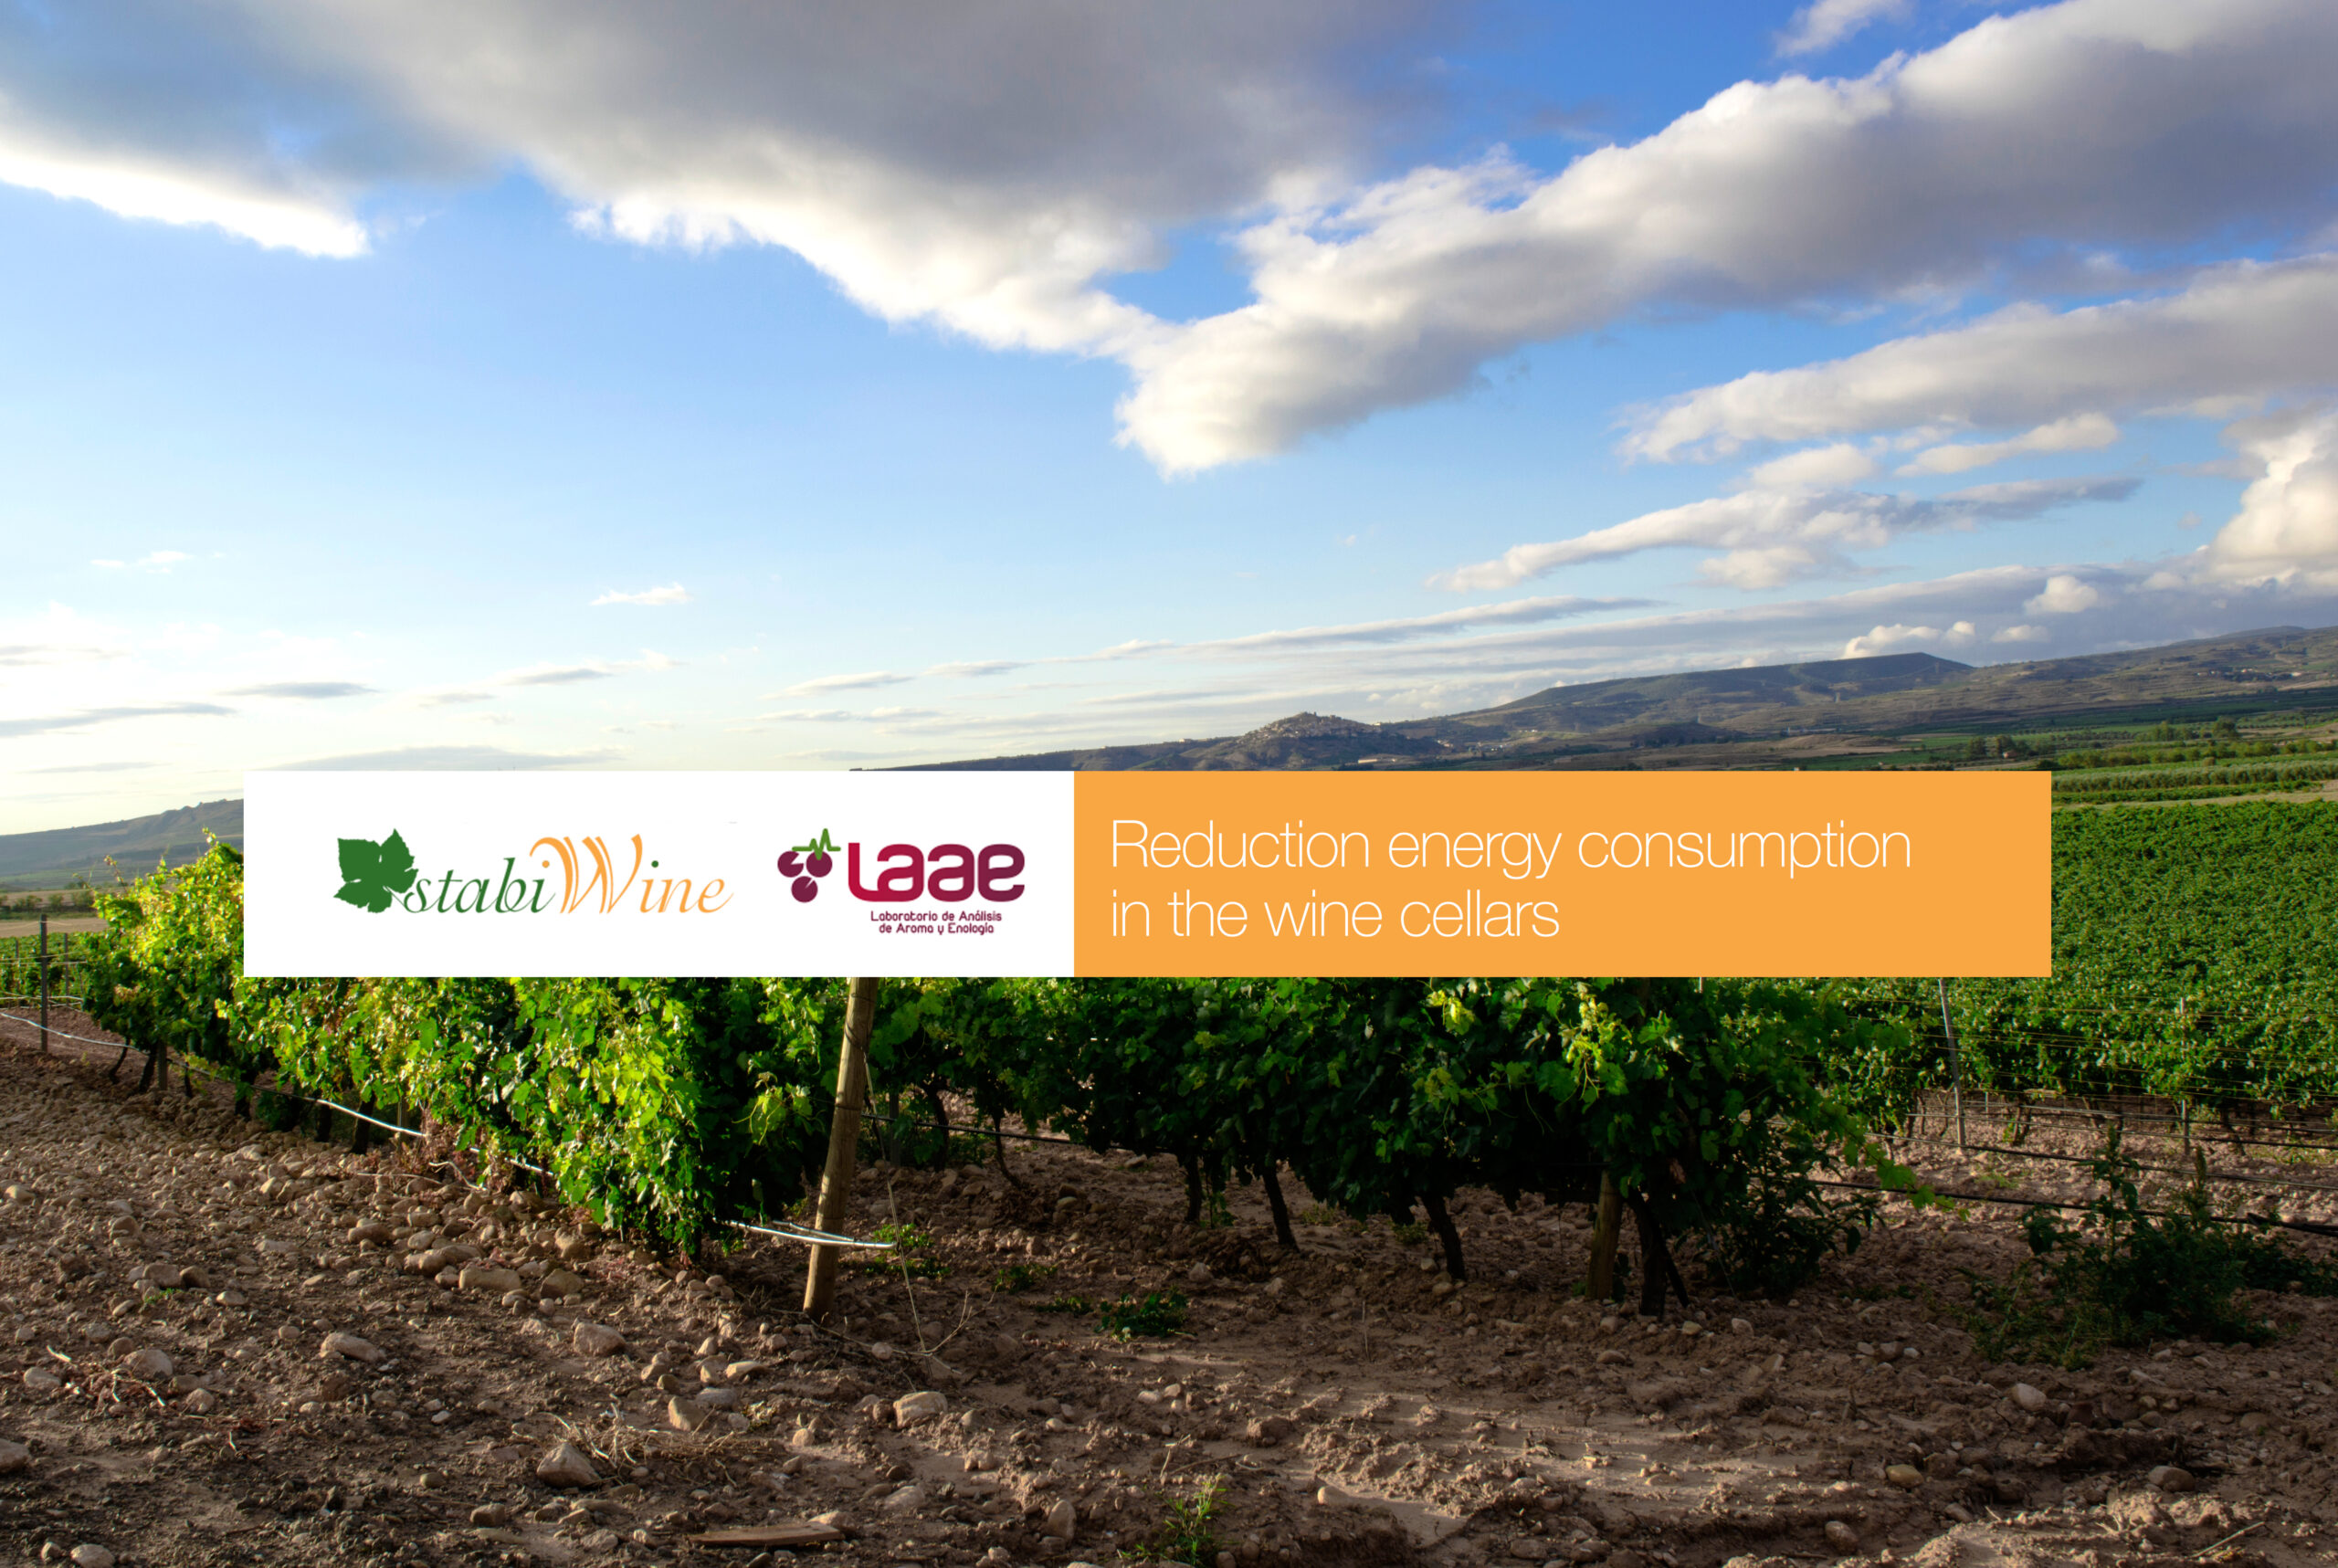 The University of Zaragoza develops a product to reduce energy consumption in the wine cellars